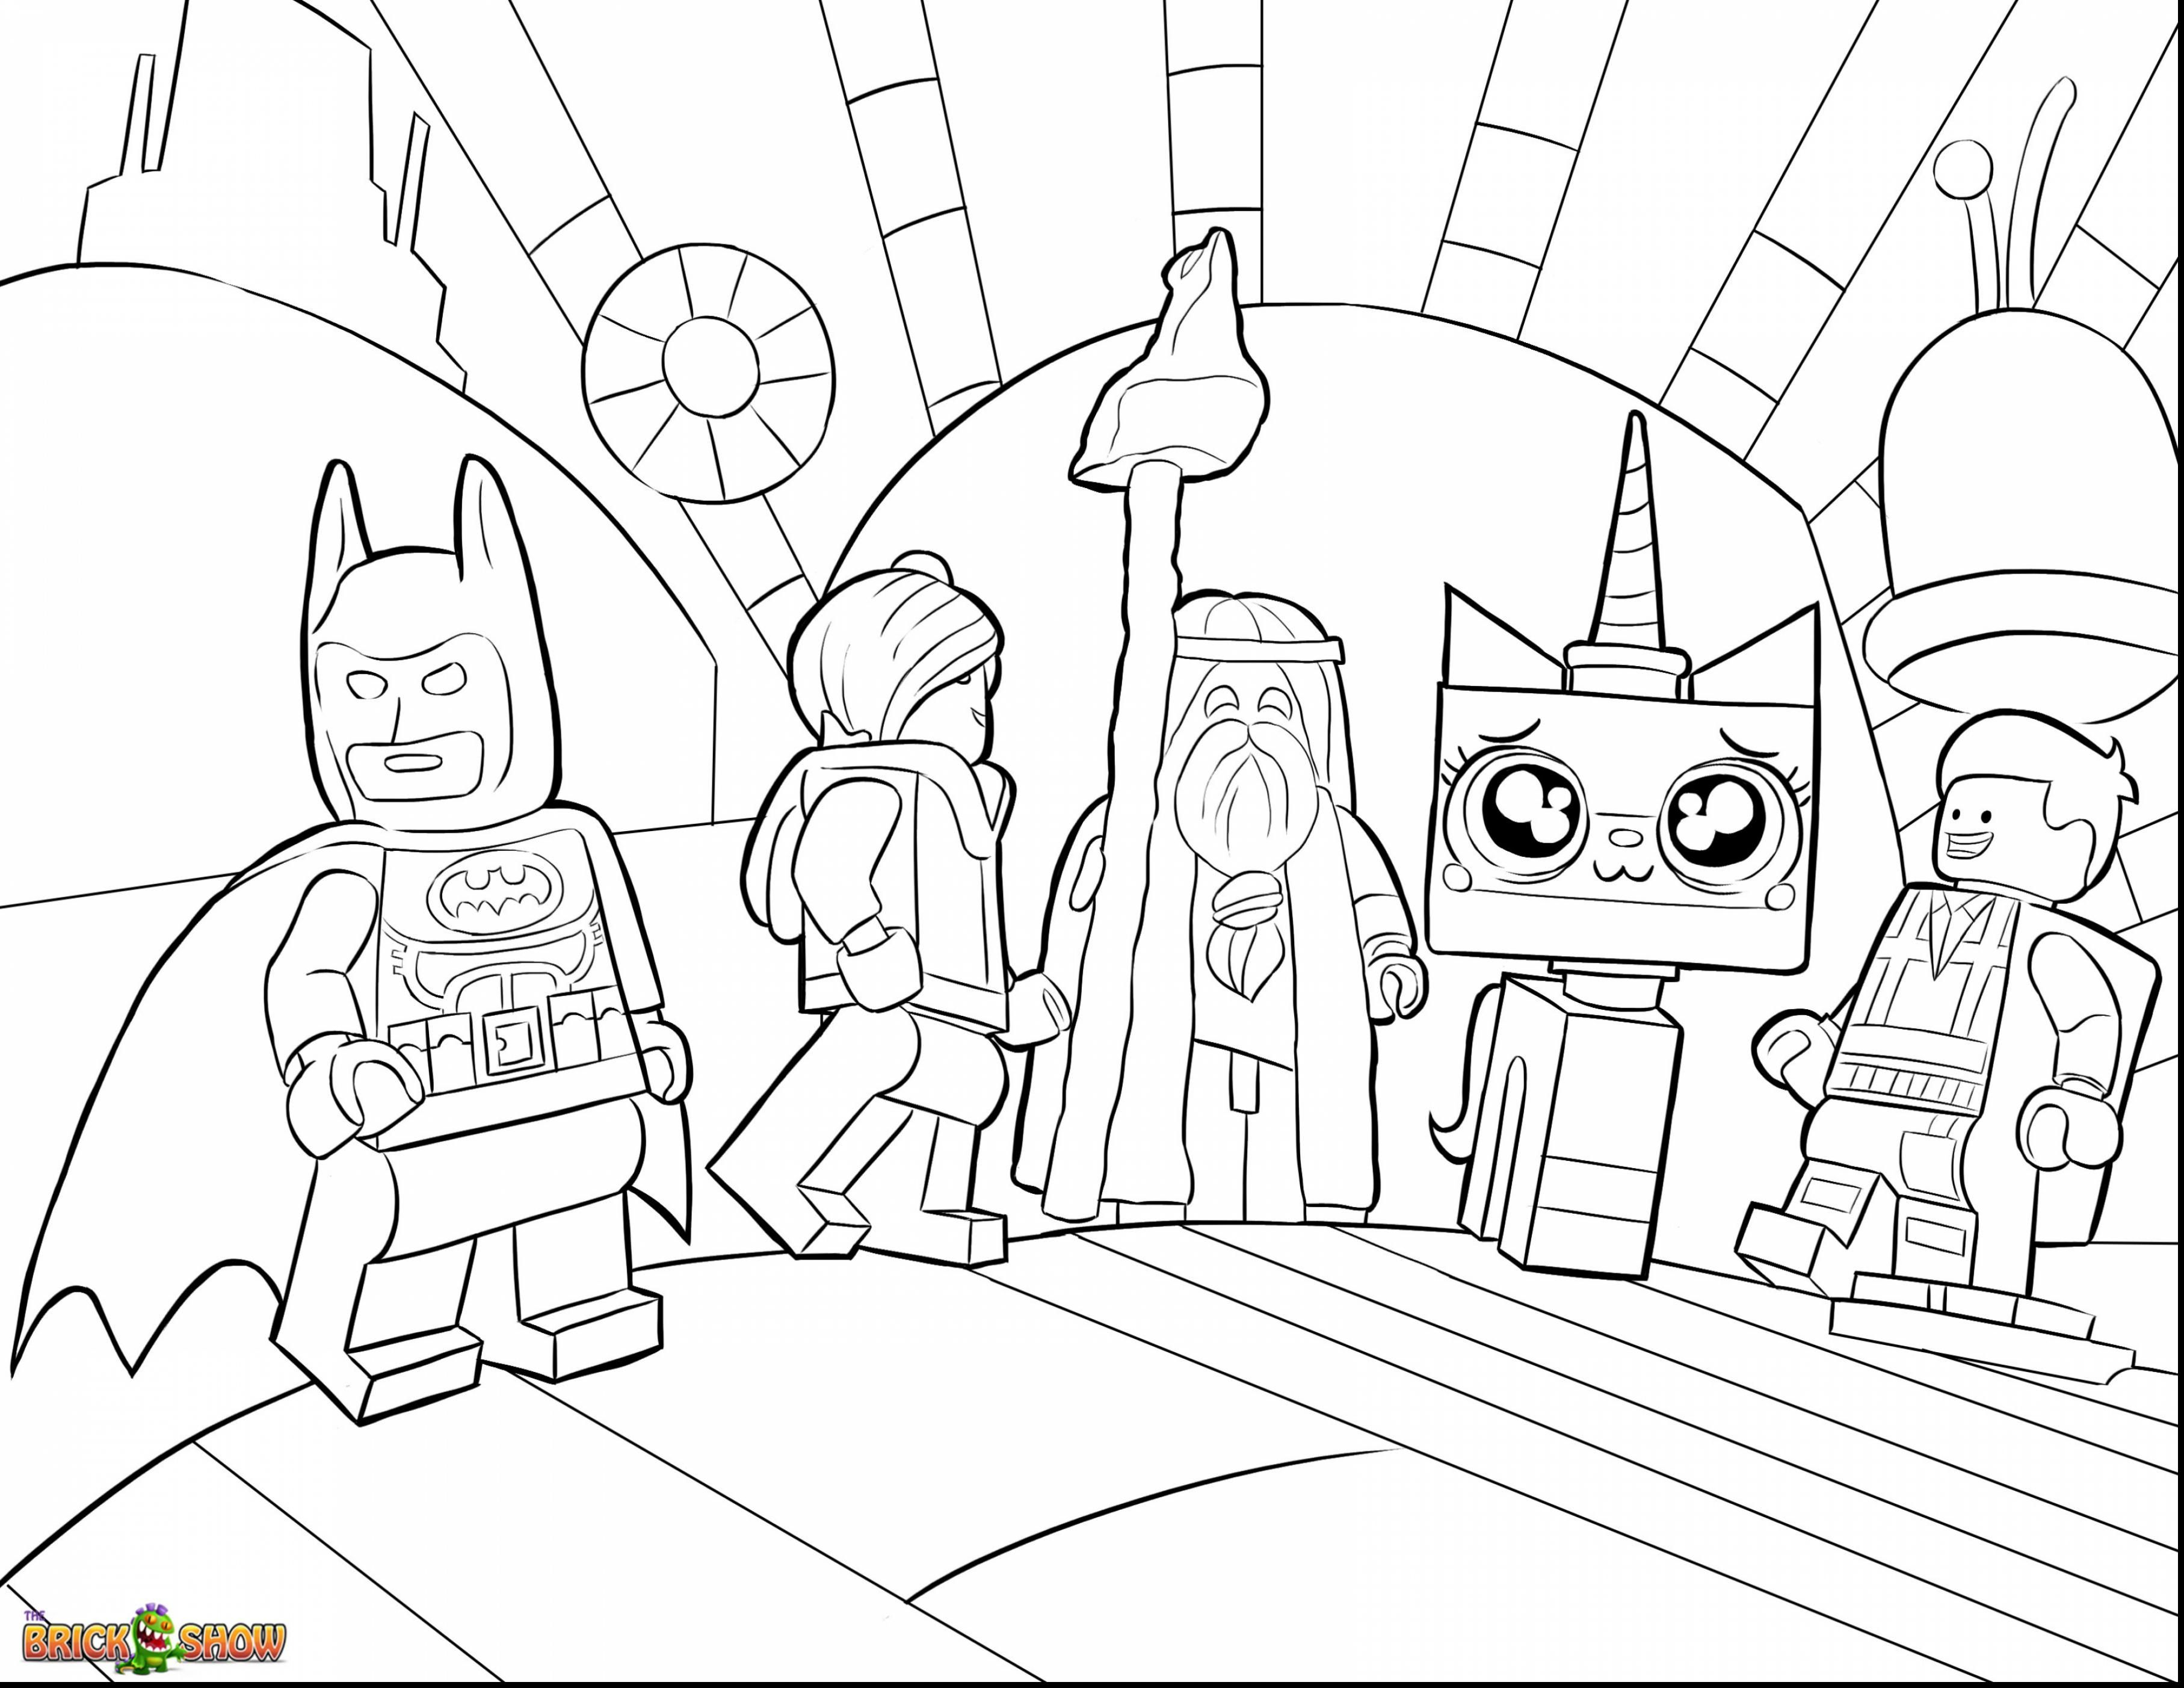 3630x2805 Superb Lego Movie Coloring Pages With Lego Movie Coloring Page